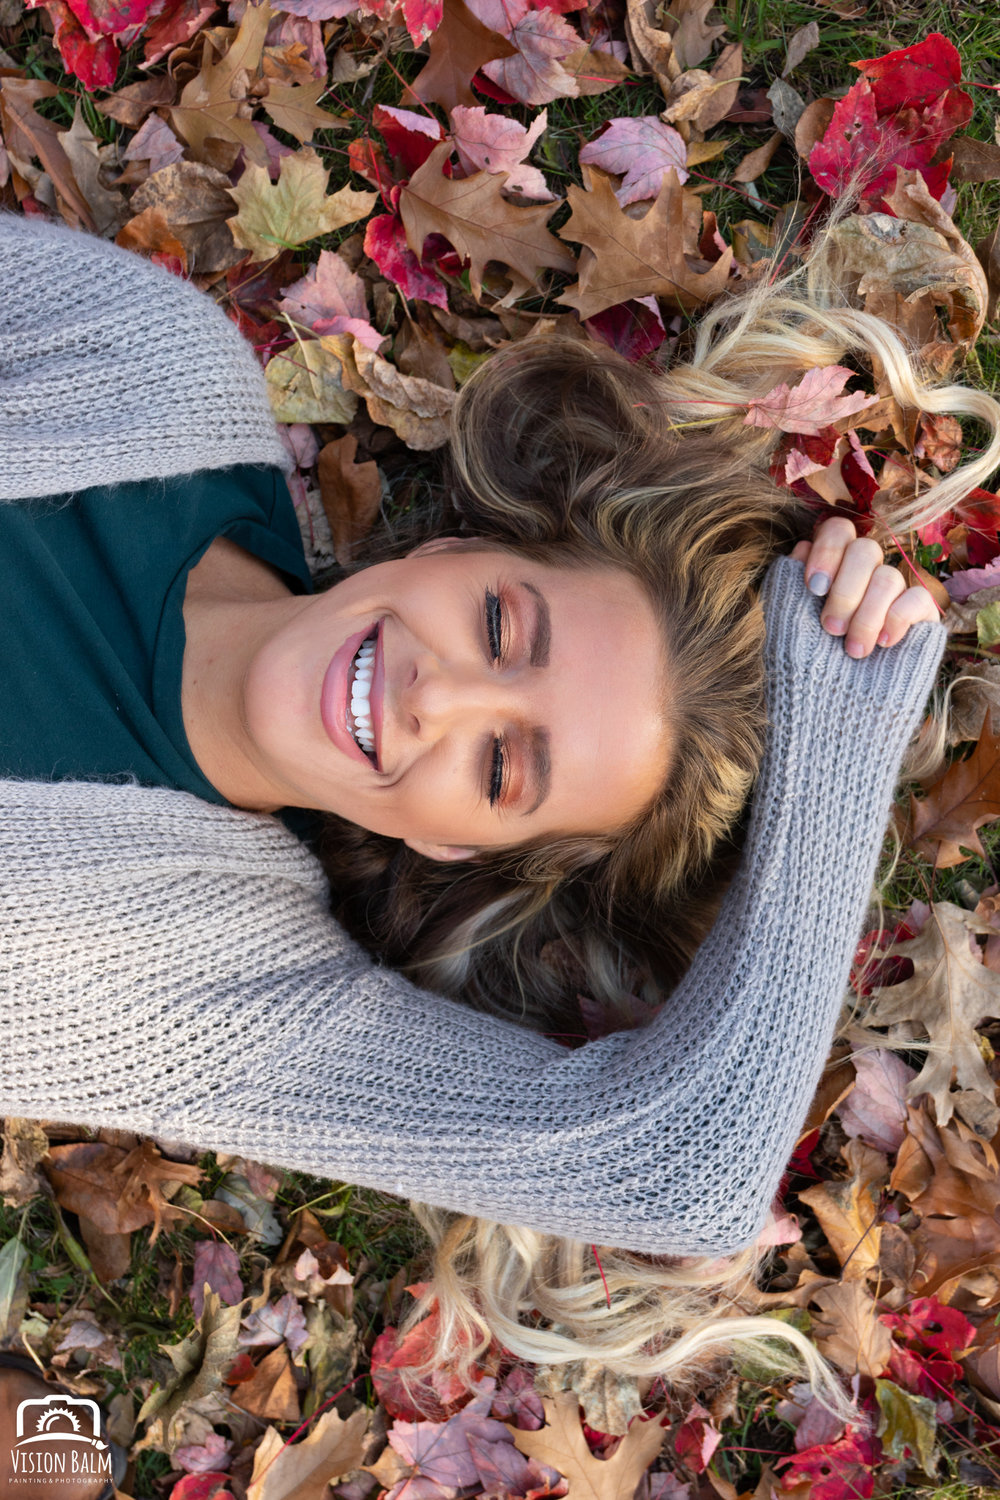 Professional fall portrait photography of model wearing a knit hat sitting in leaves photographed by Vision Balm in Charleston, SC.